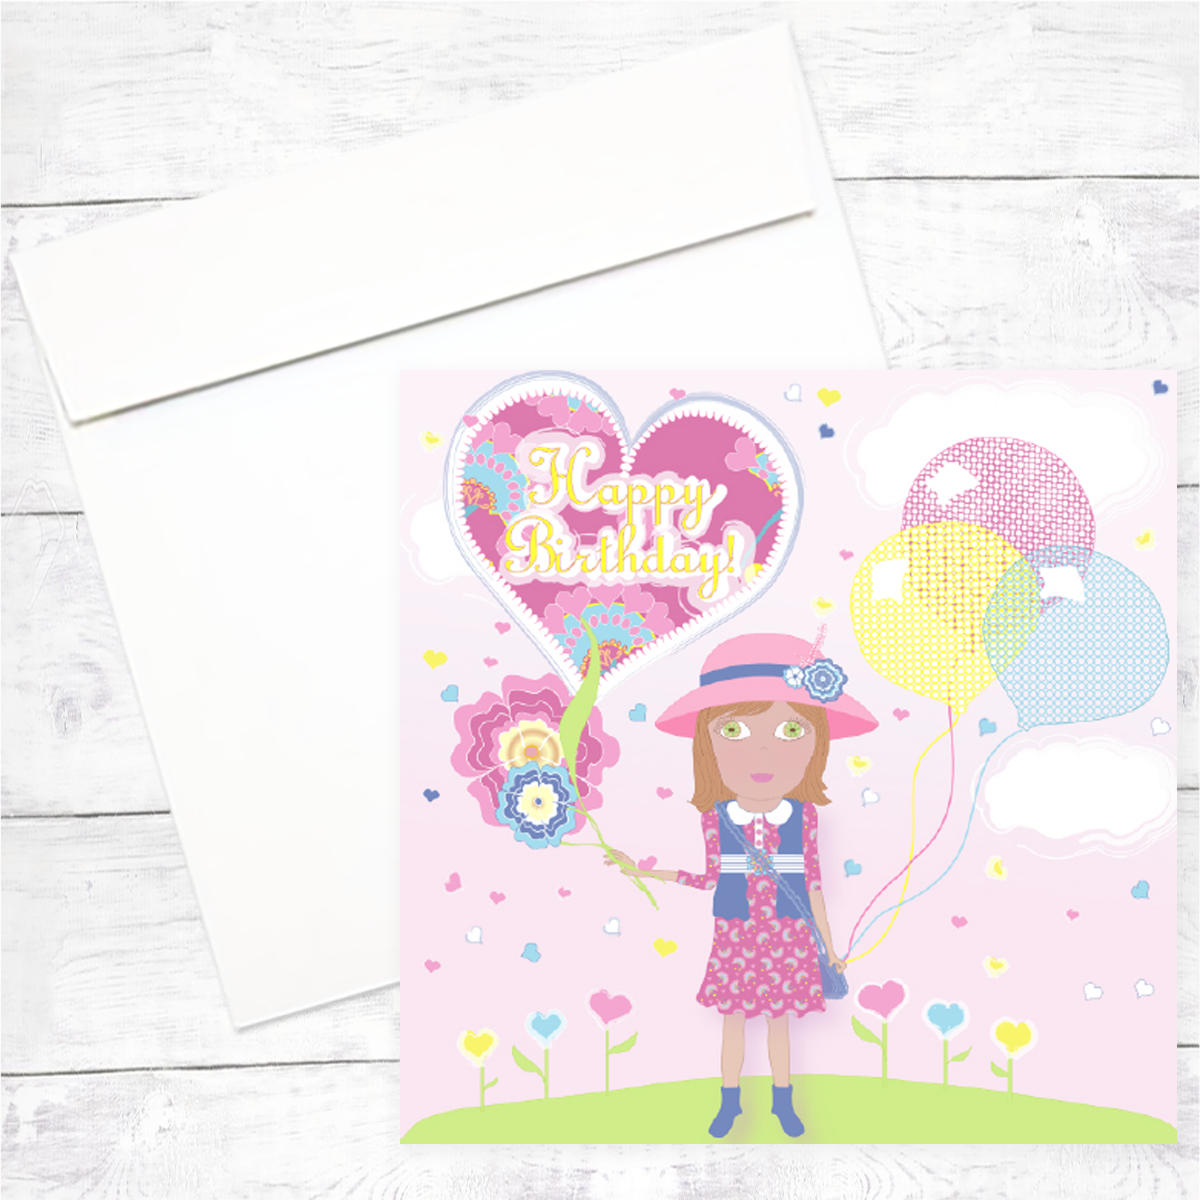 Florsita Greeting Card: Happy Birthday